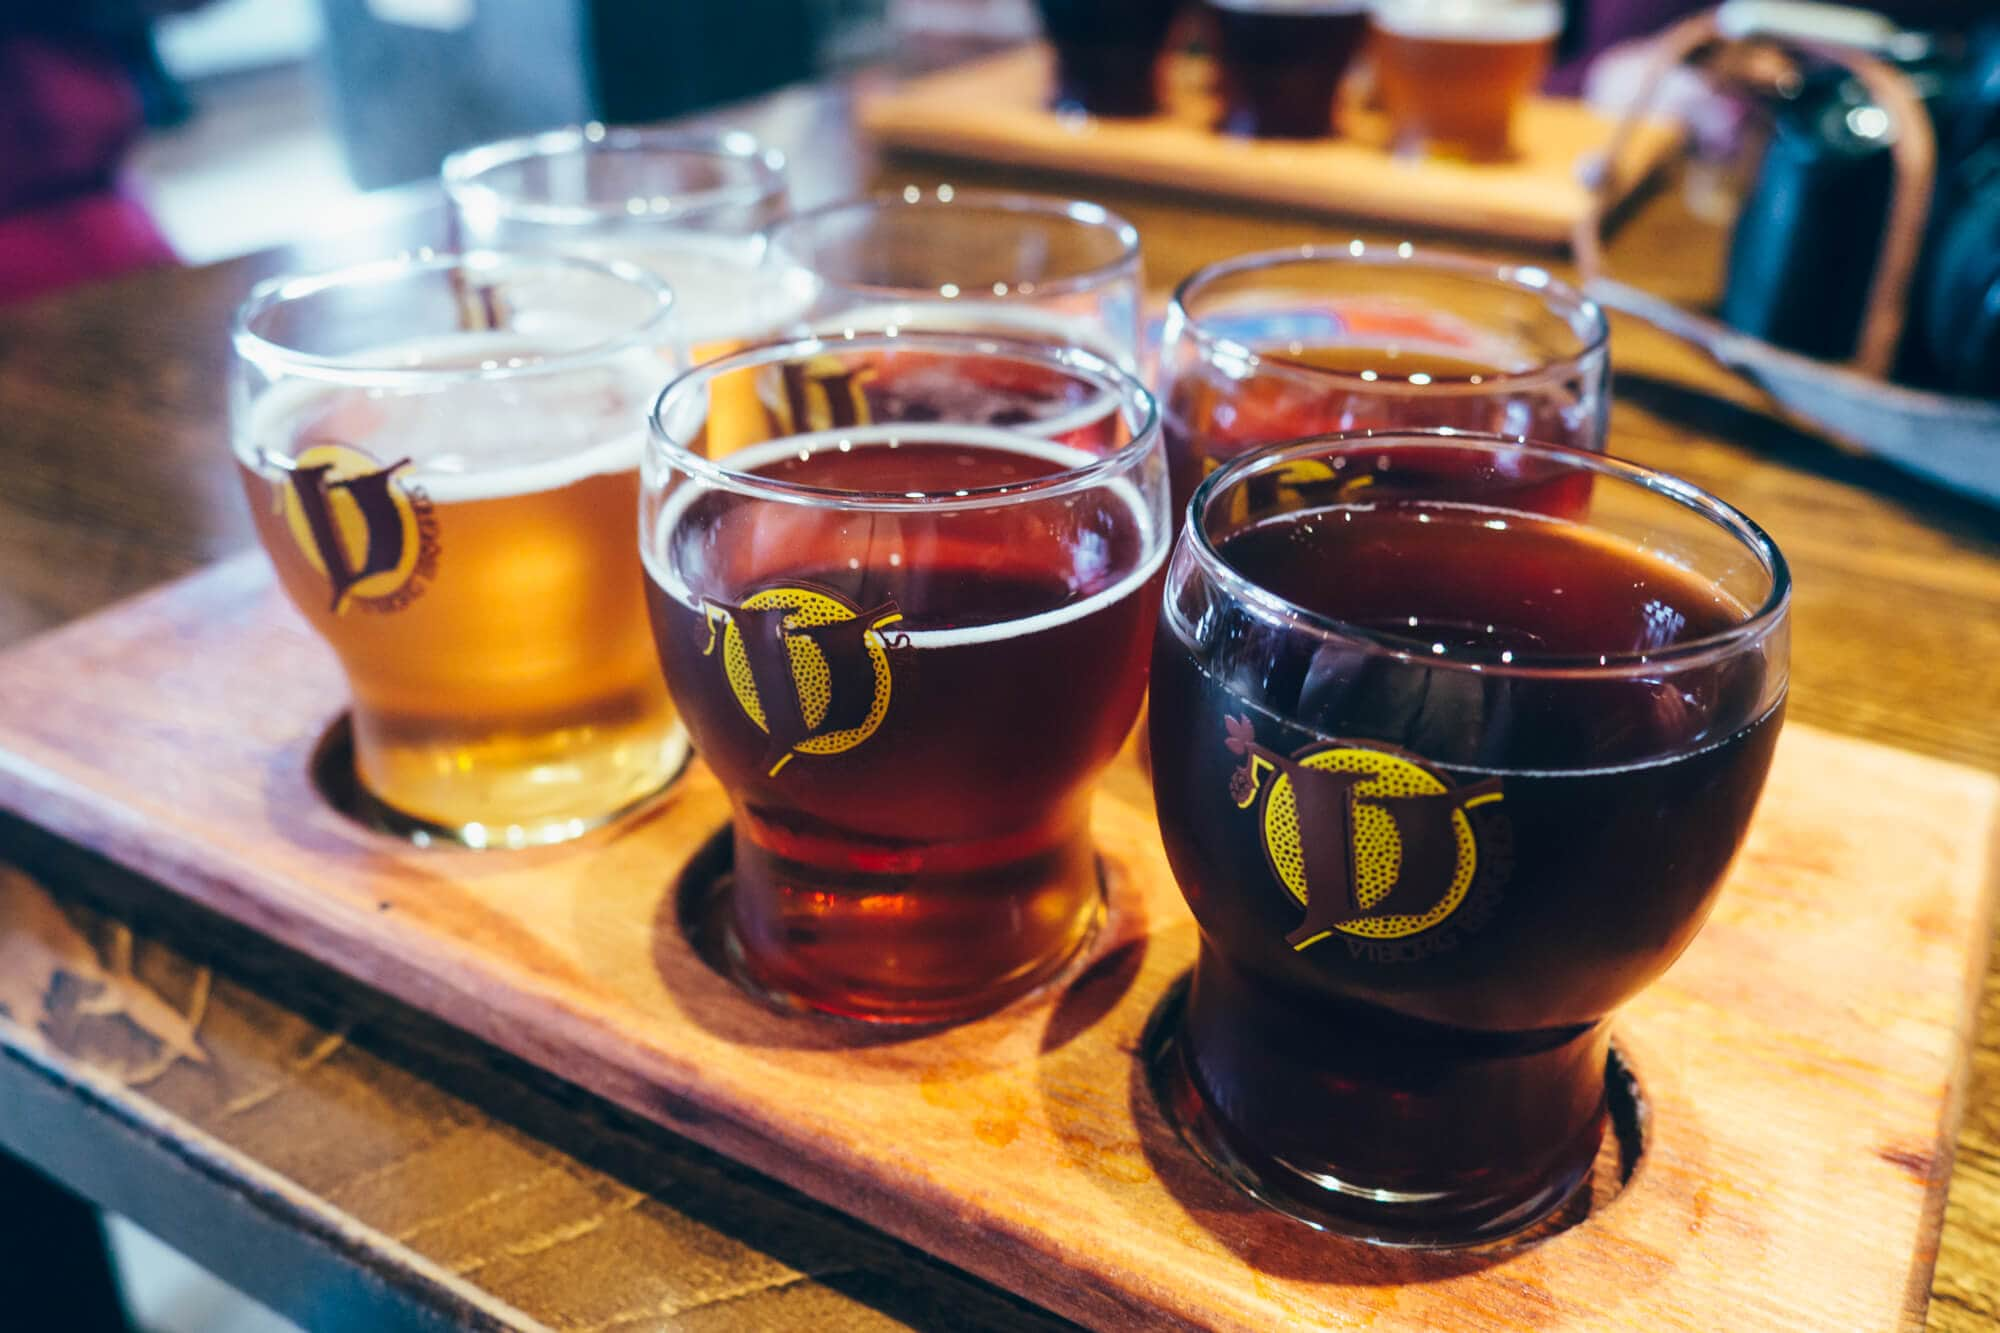 3 awesome day trips from Aarhus - Beer tasting at Viborg Bryghus